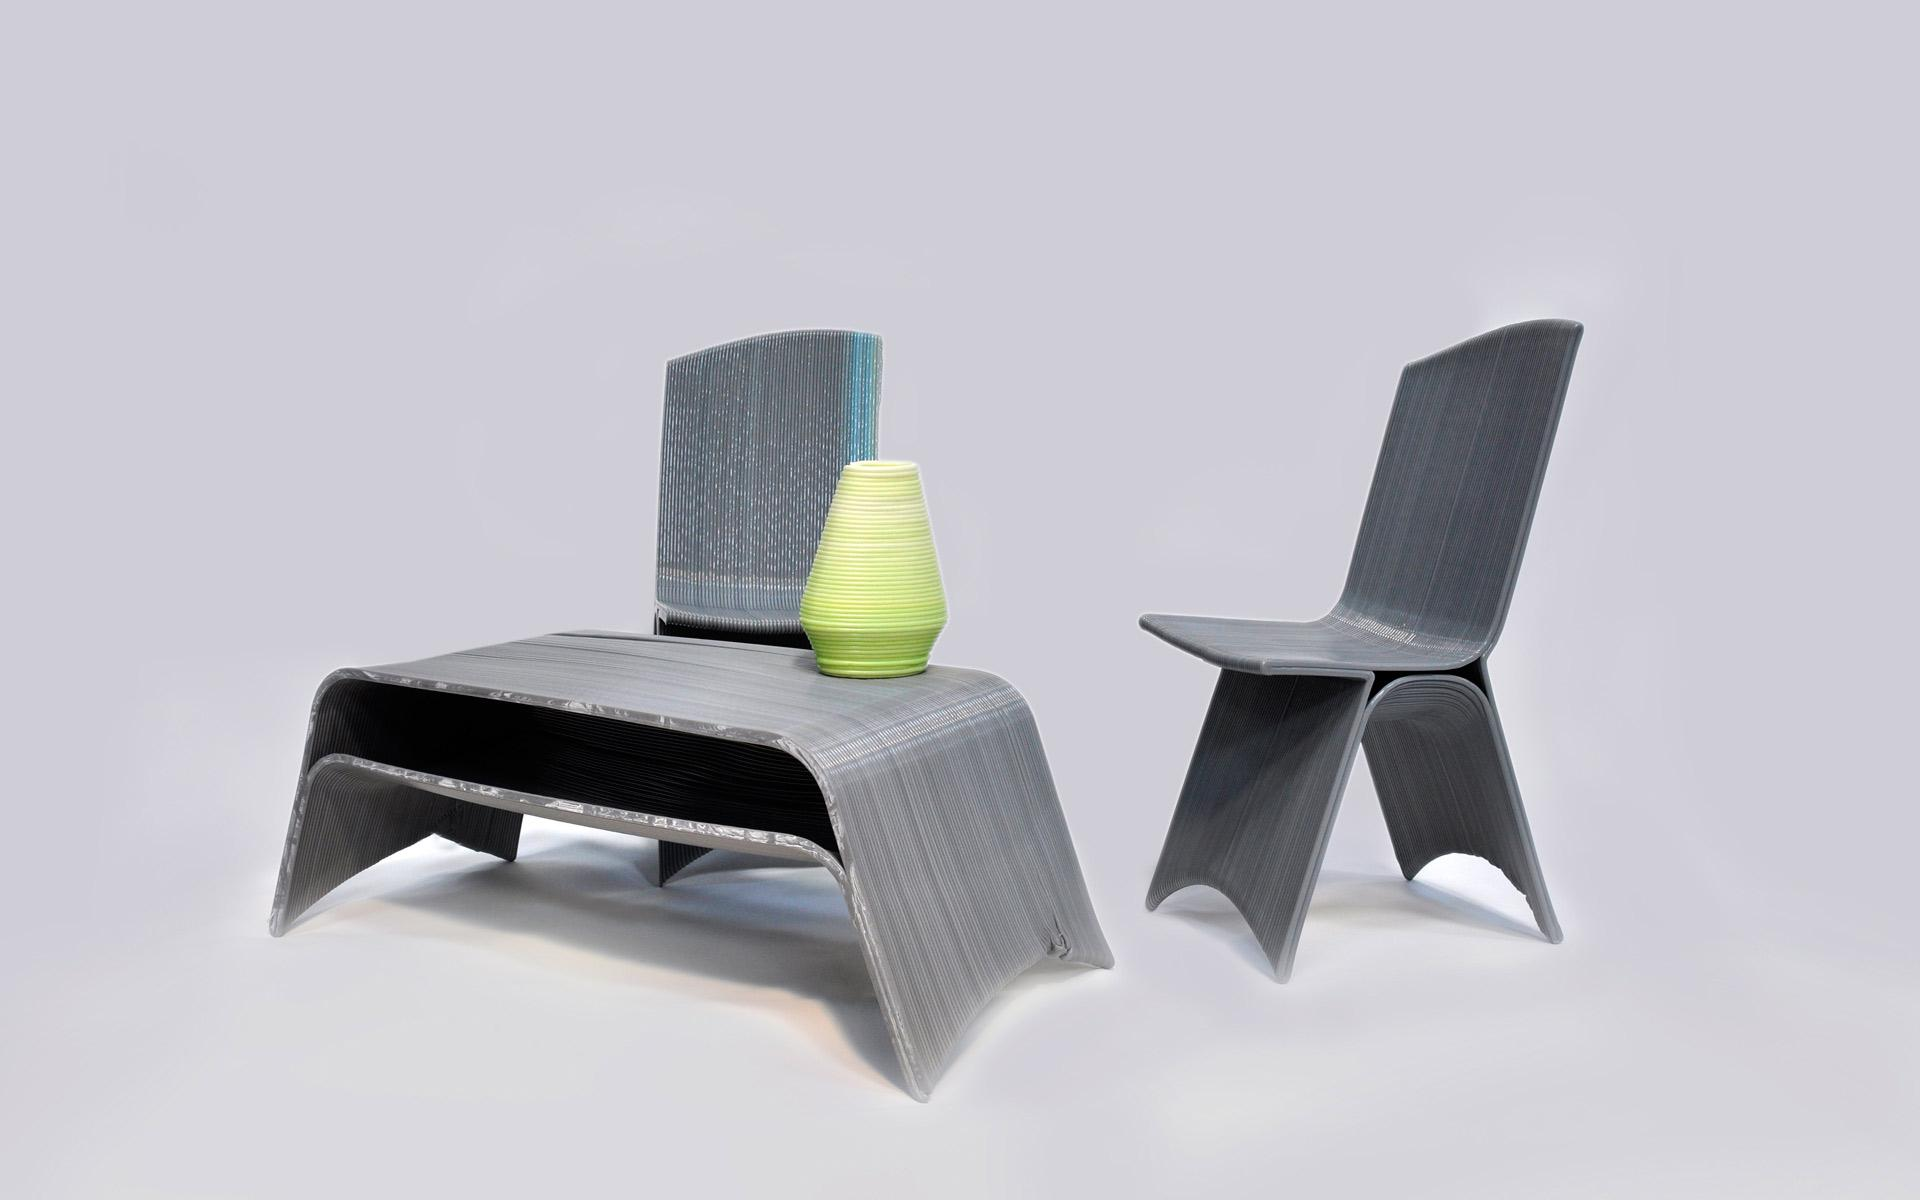 Printed Chair French Company Drawn Is Now 3d Printing Entire Furniture